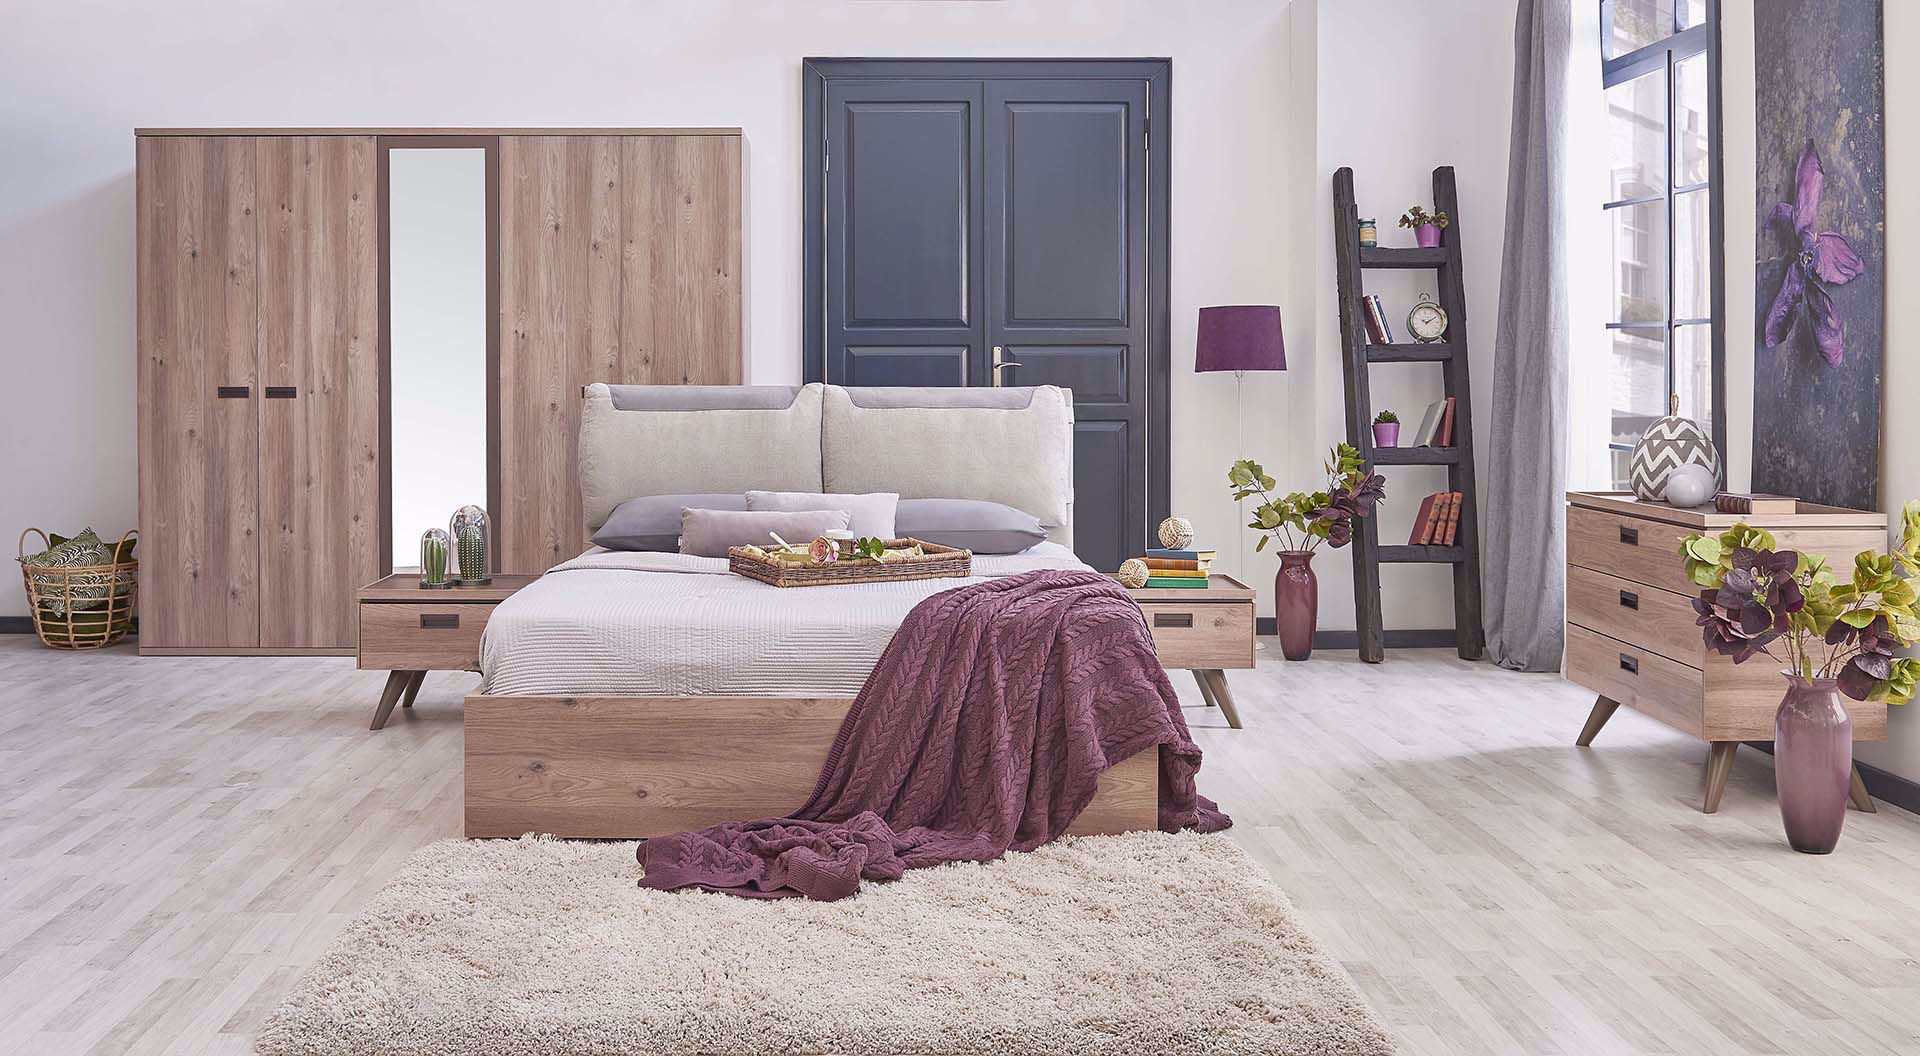 Sylva Bedstead (with Base) 160*200cm (Incl. Headboard)